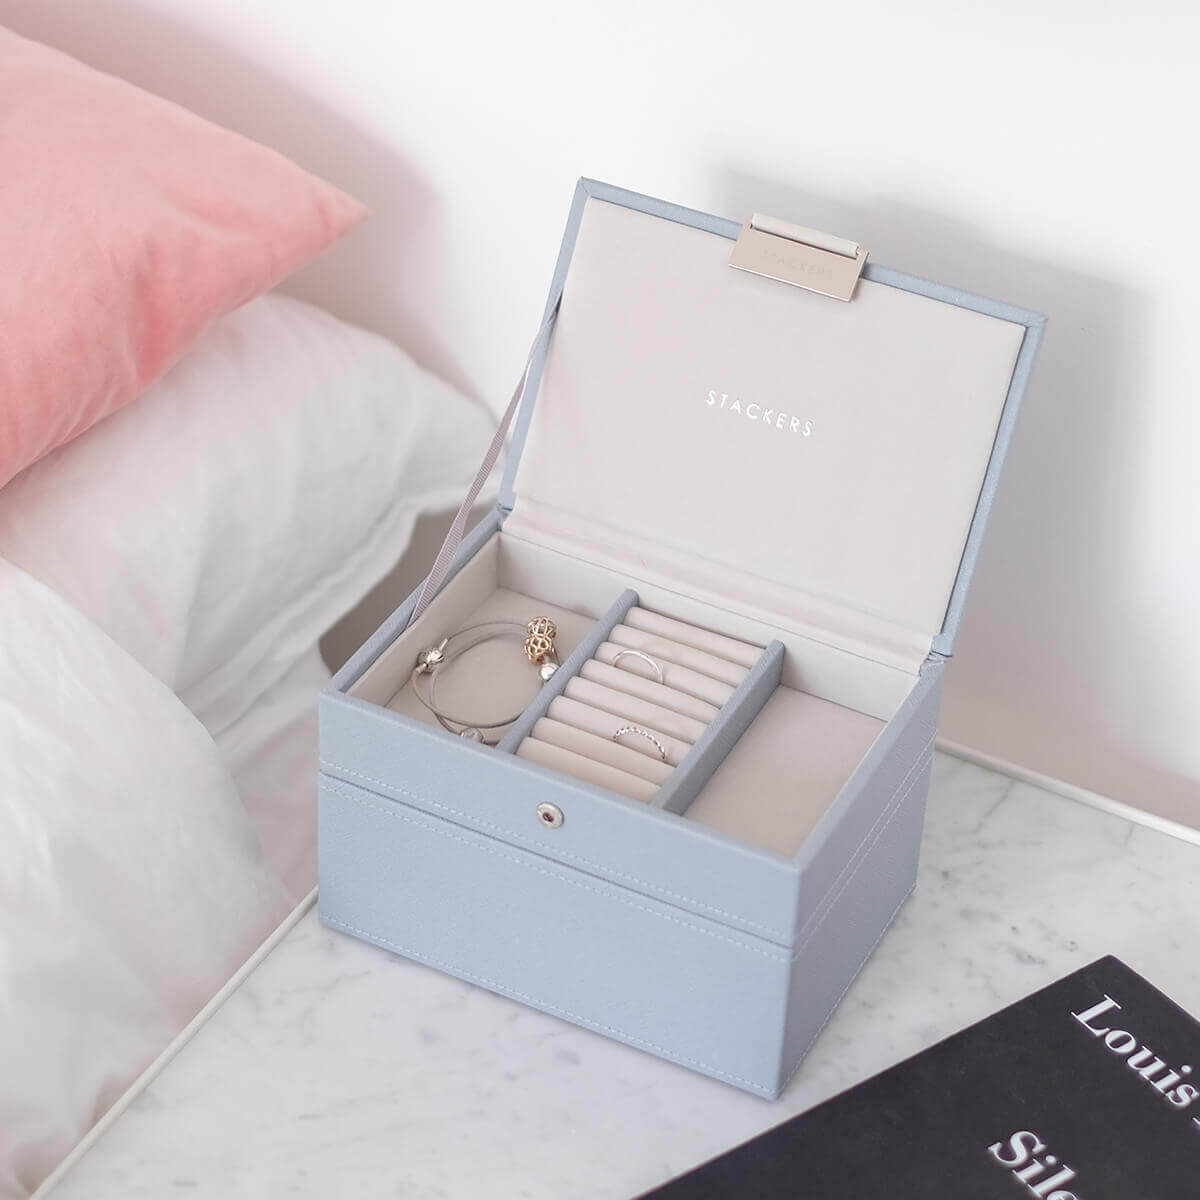 Jewelry Boxes Jewelry Organizers Jewelry Holders The Container Store